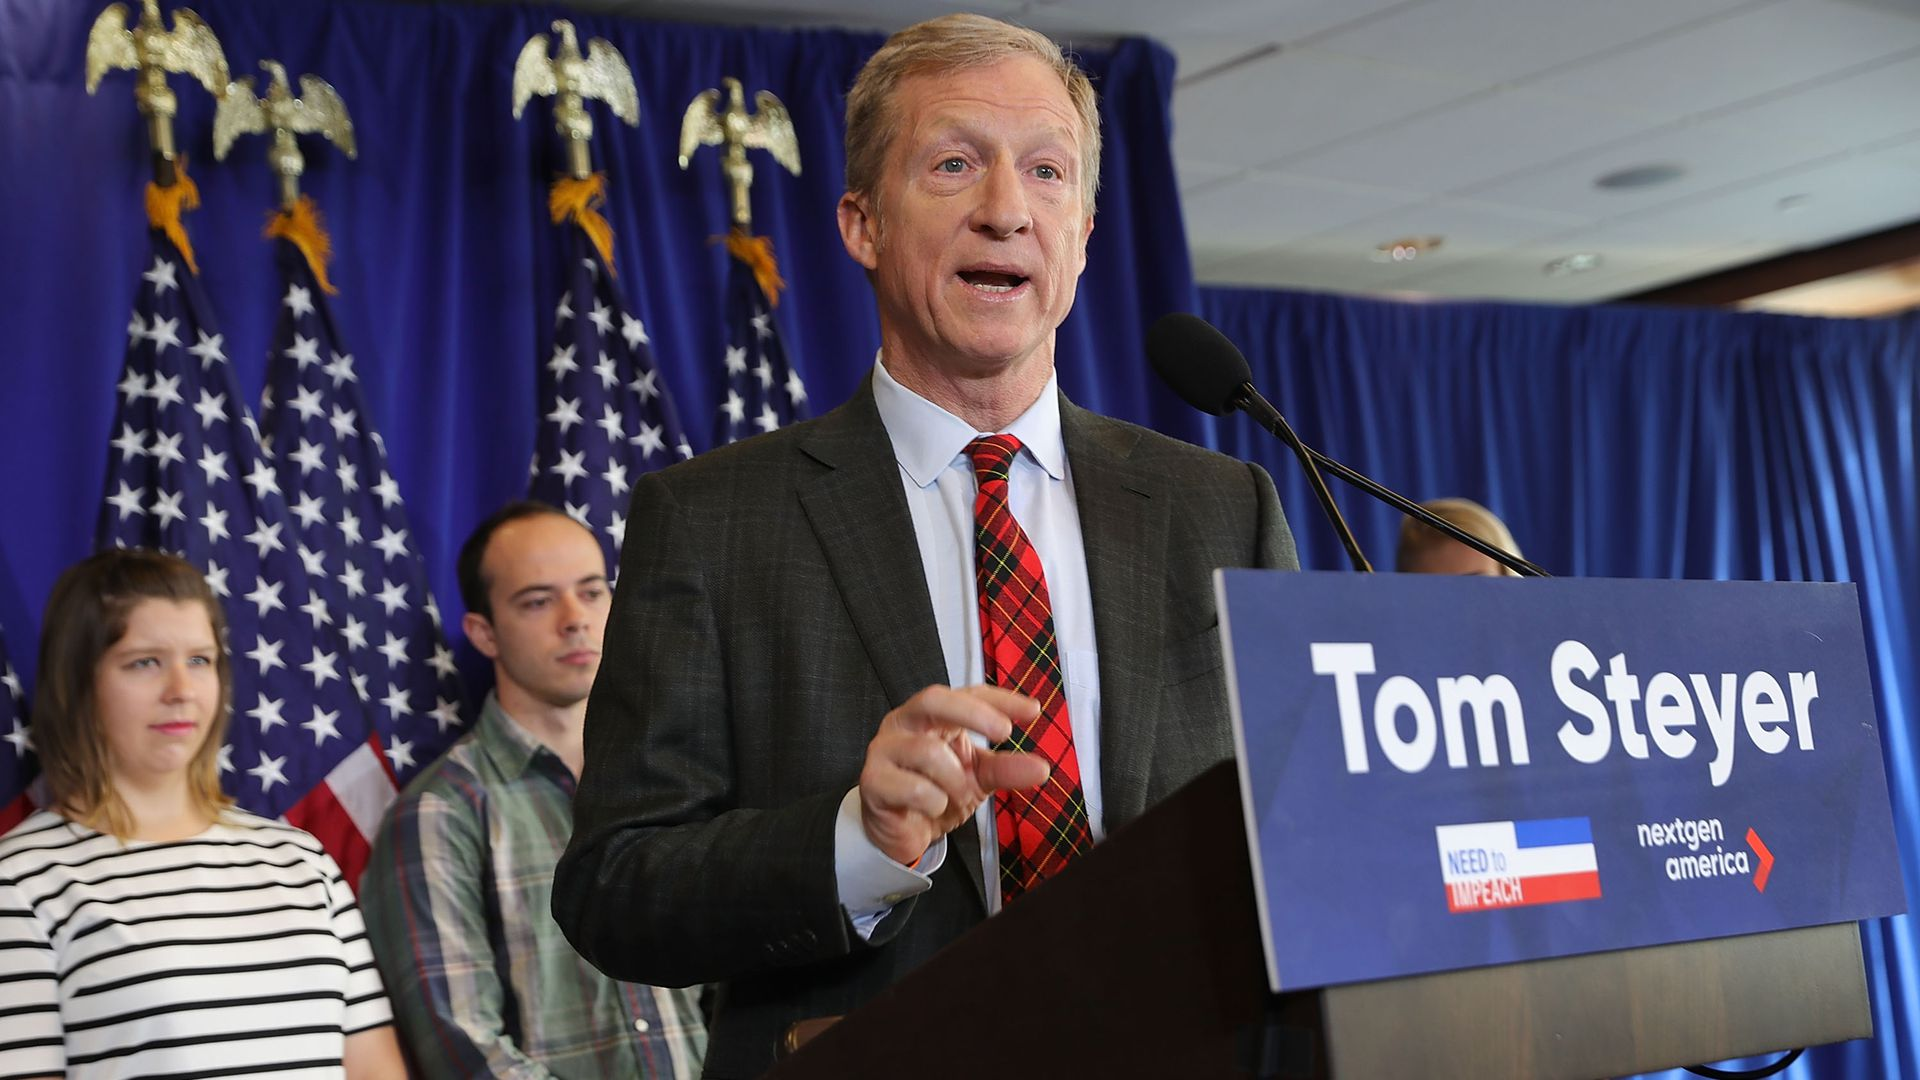 Tom Steyer standing at a podium.